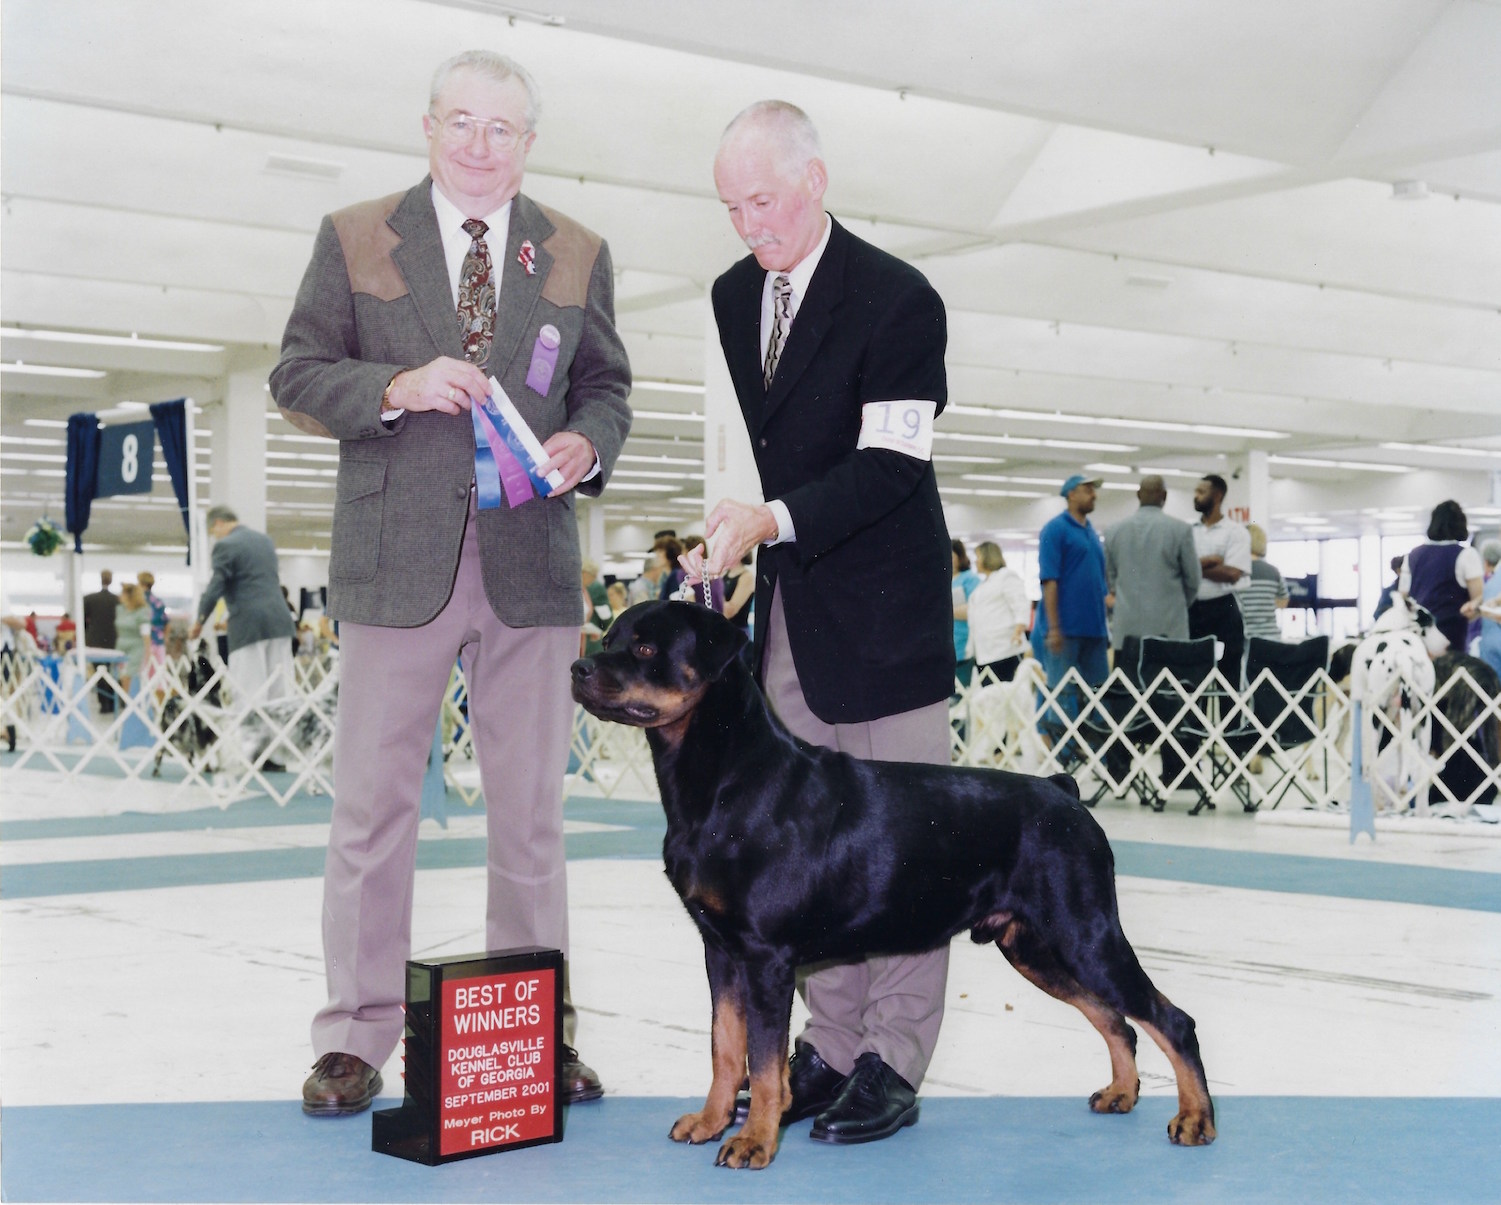 Marcus, Best of Winners, Douglasville Kennel Club of Georgia, September 2001, Meyer Photo by Rick